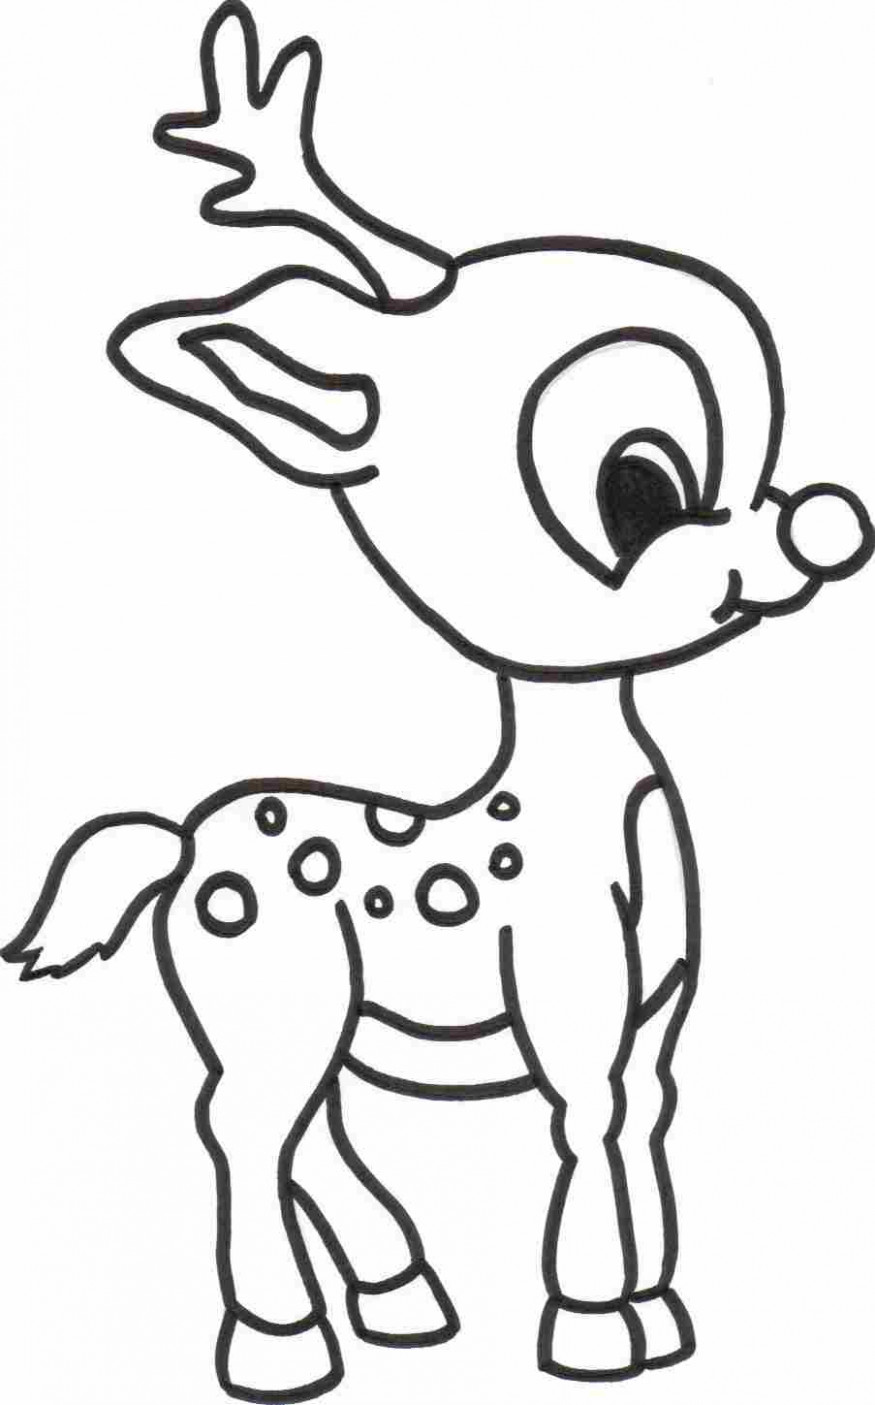 coloring page ~ Baby Reindeer Coloring Sheet Christmas Sheets ..